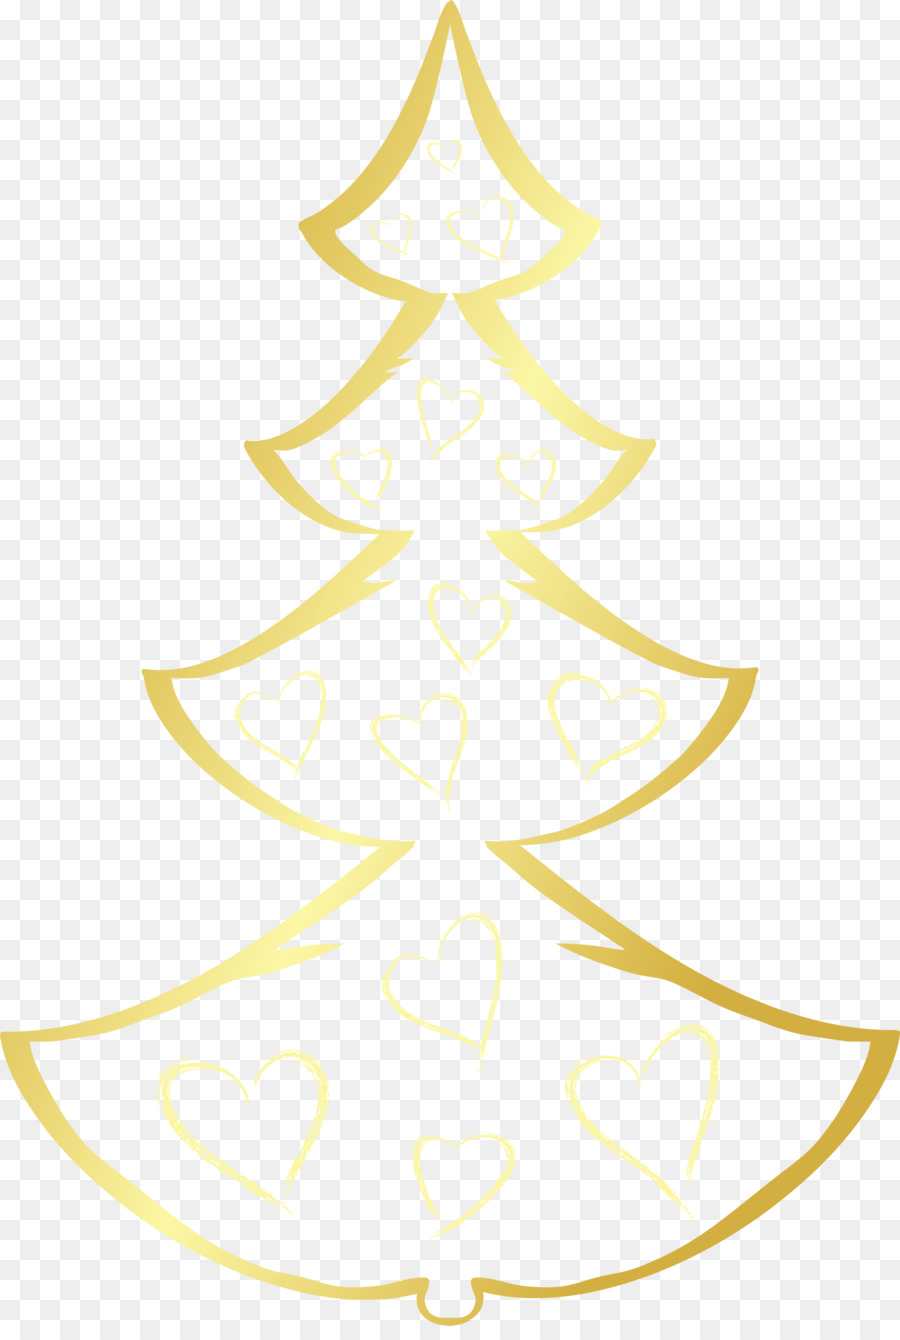 Gold Christmas Tree Png Download 2001 2948 Free Transparent